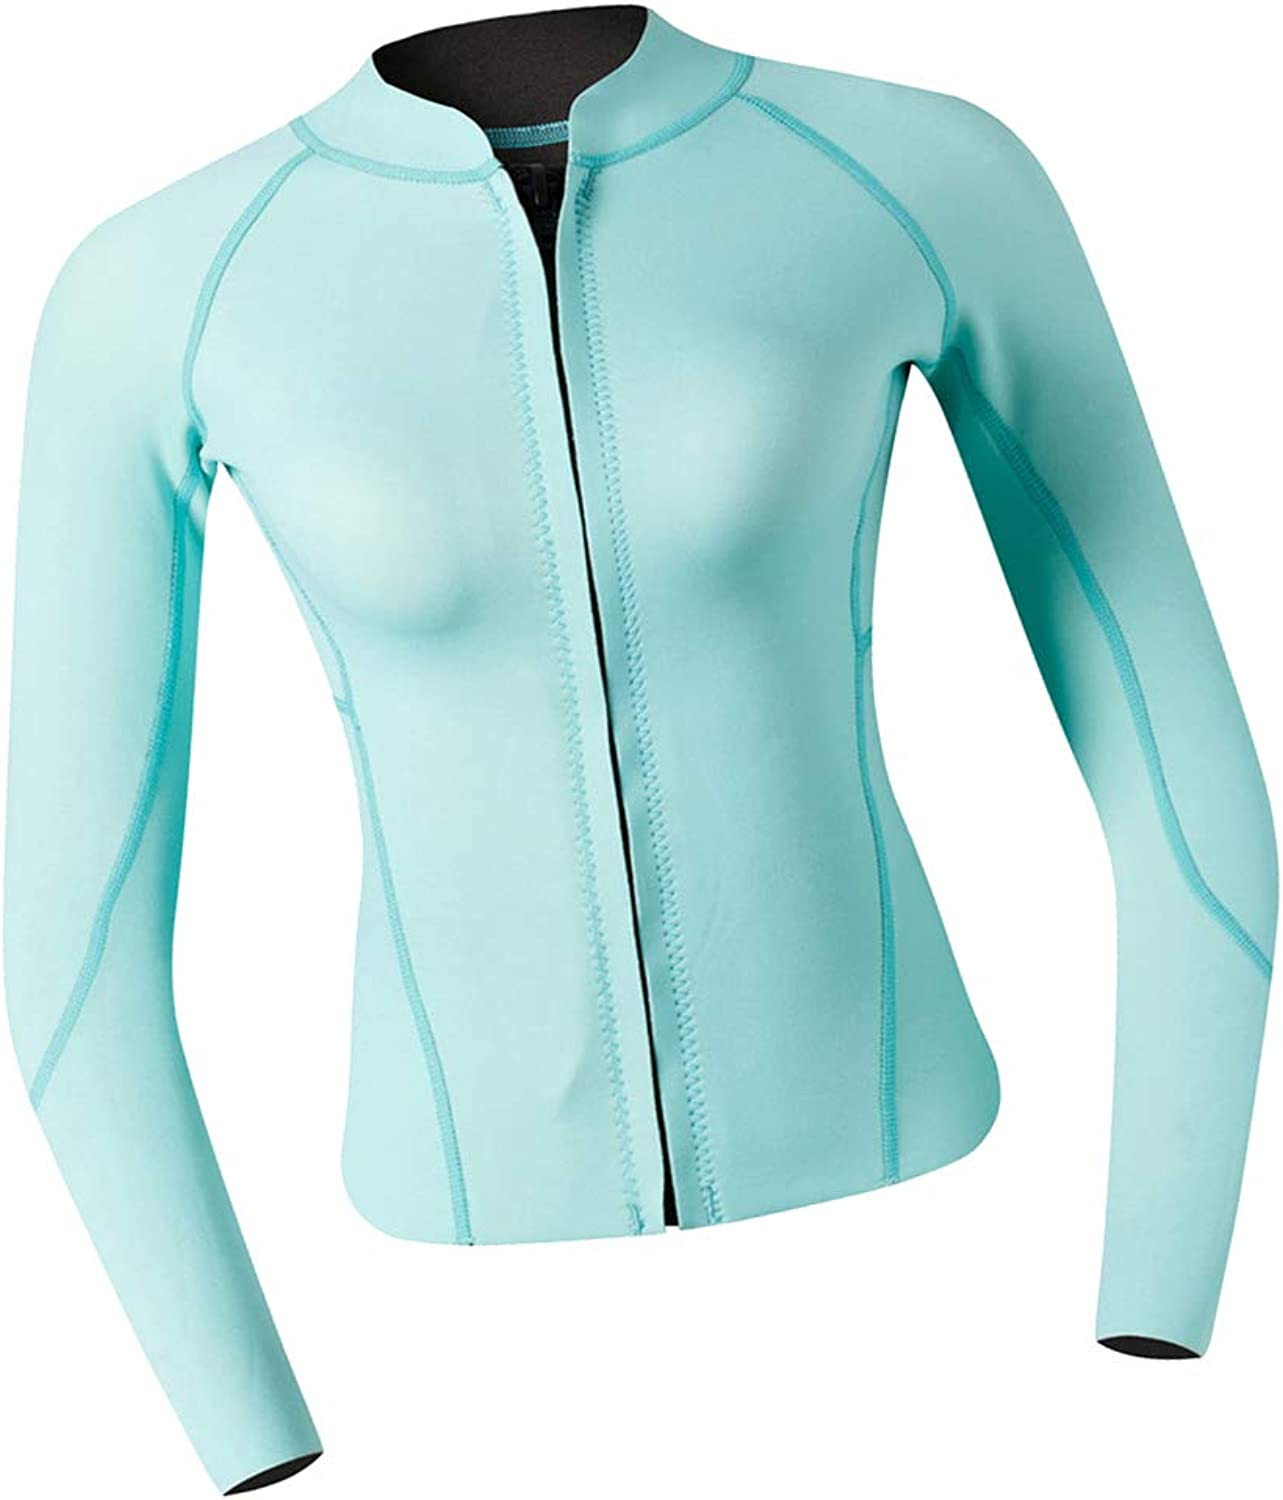 DYNWAVE Women Top Wetsuits Neoprene 2mm Water Sports Jackets Diving Suit for Diving, Snorkeling & Swimming Cyan